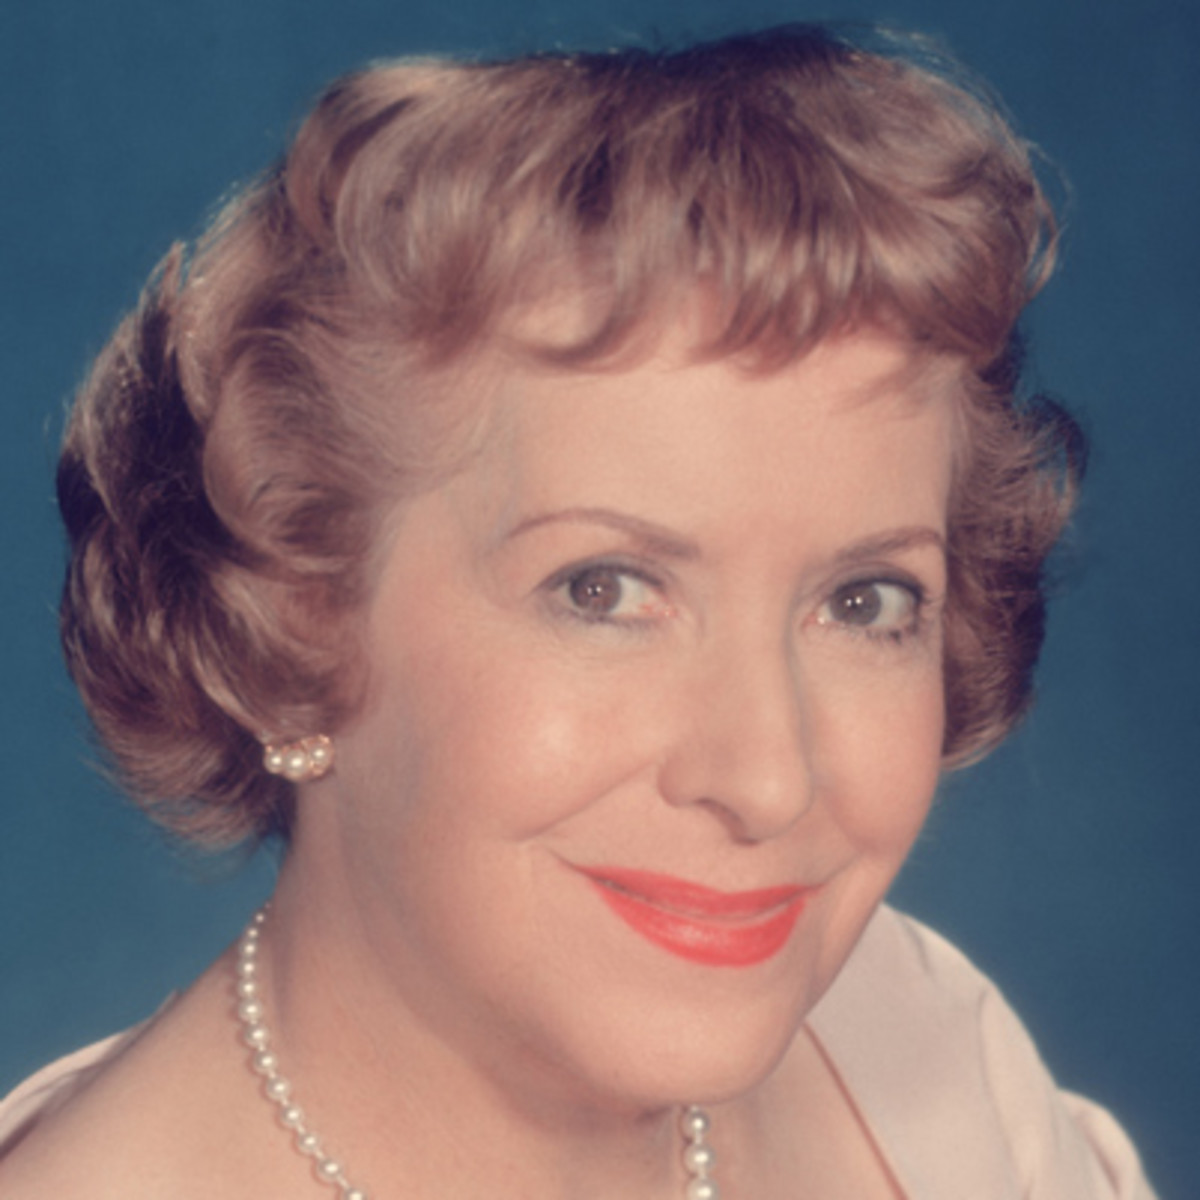 gracie allen duke